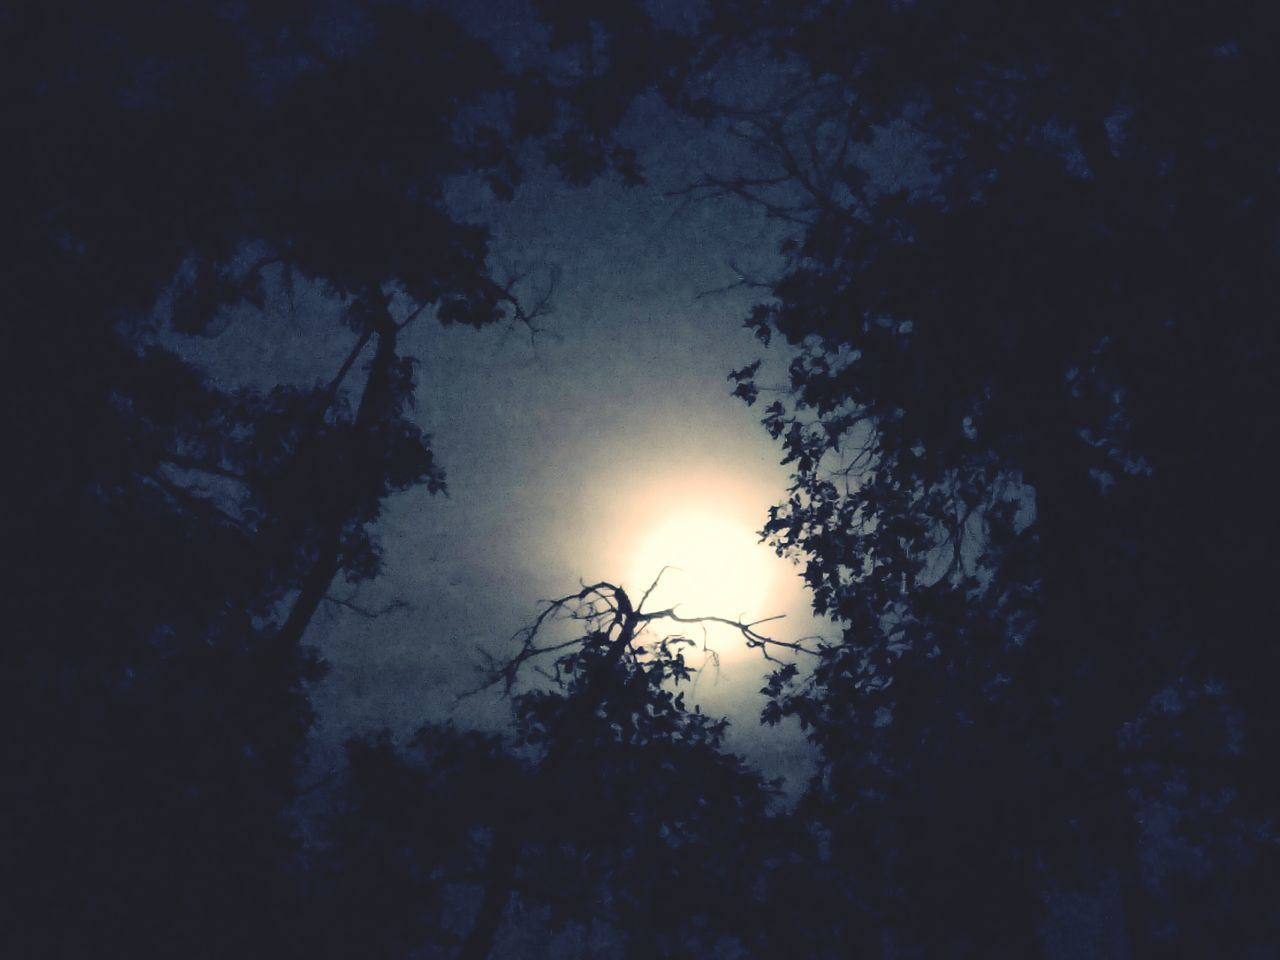 Moonlight Solace Moonthroughtrees Black And White Night Photography Branches And Sky Moon Shots Moonshine